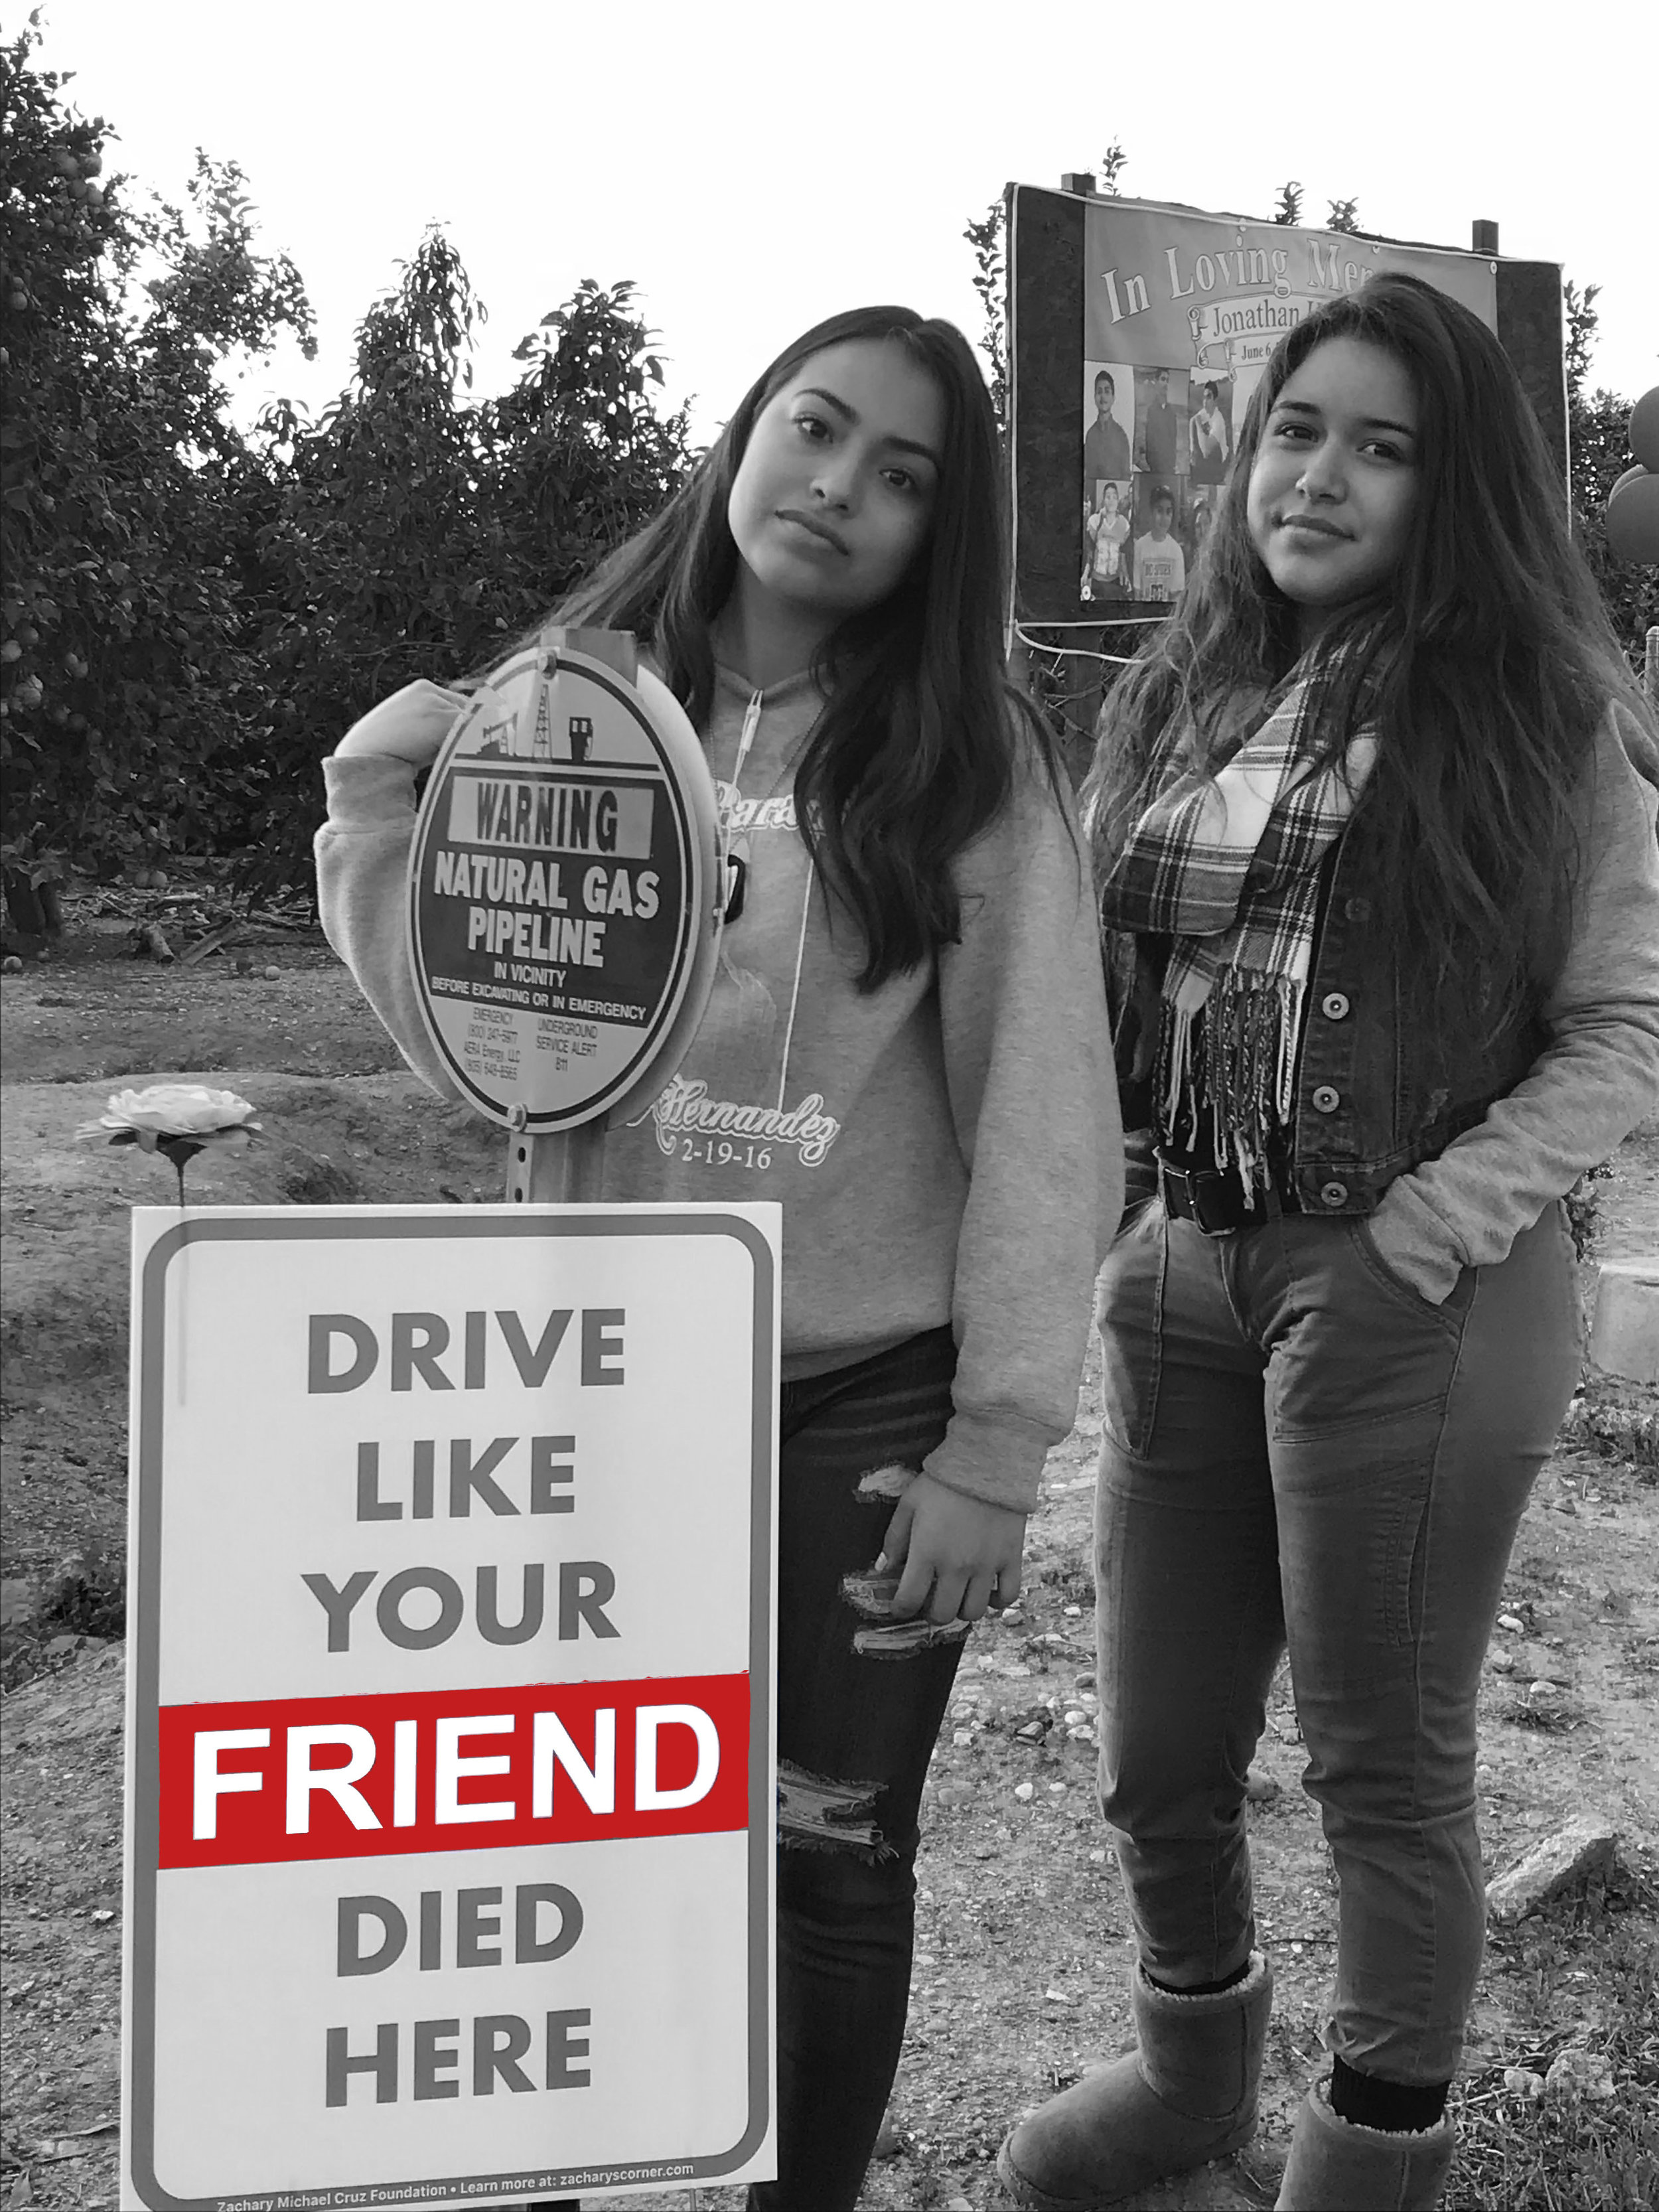 BREE CRUZ, JONATHAN'S GIRLFRIEND, ASKS YOU TO DRIVE LIKE YOUR FRIEND DIED HERE. HERS DID.